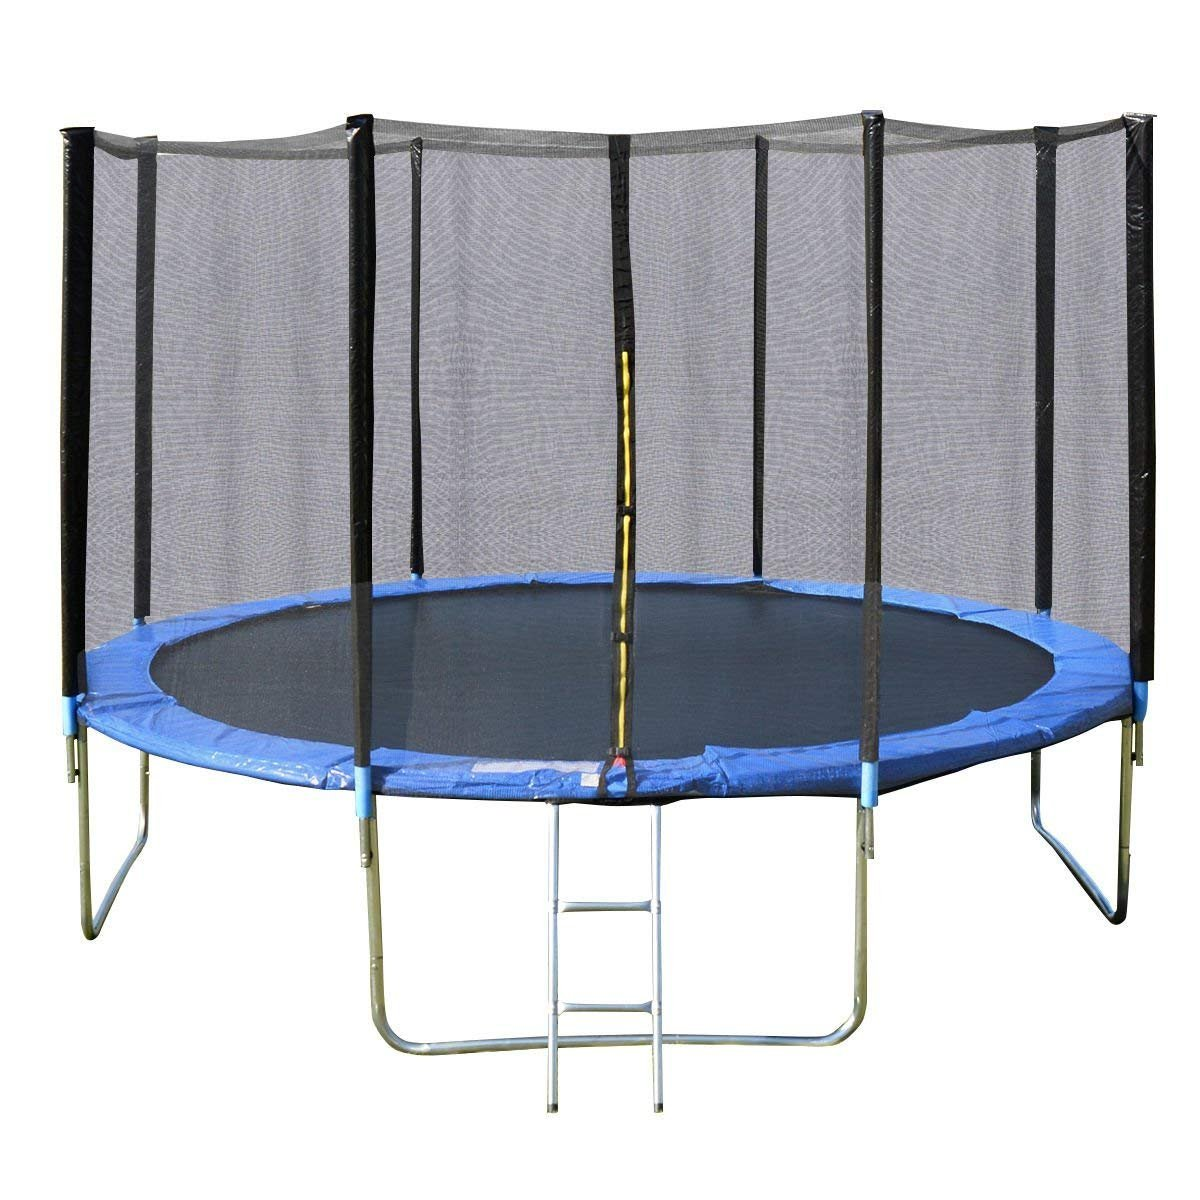 Giantex Outdoor Trampoline Bounce Jumping Trampolines W/Safety Pad Enclosure Net & Ladder,14 FT